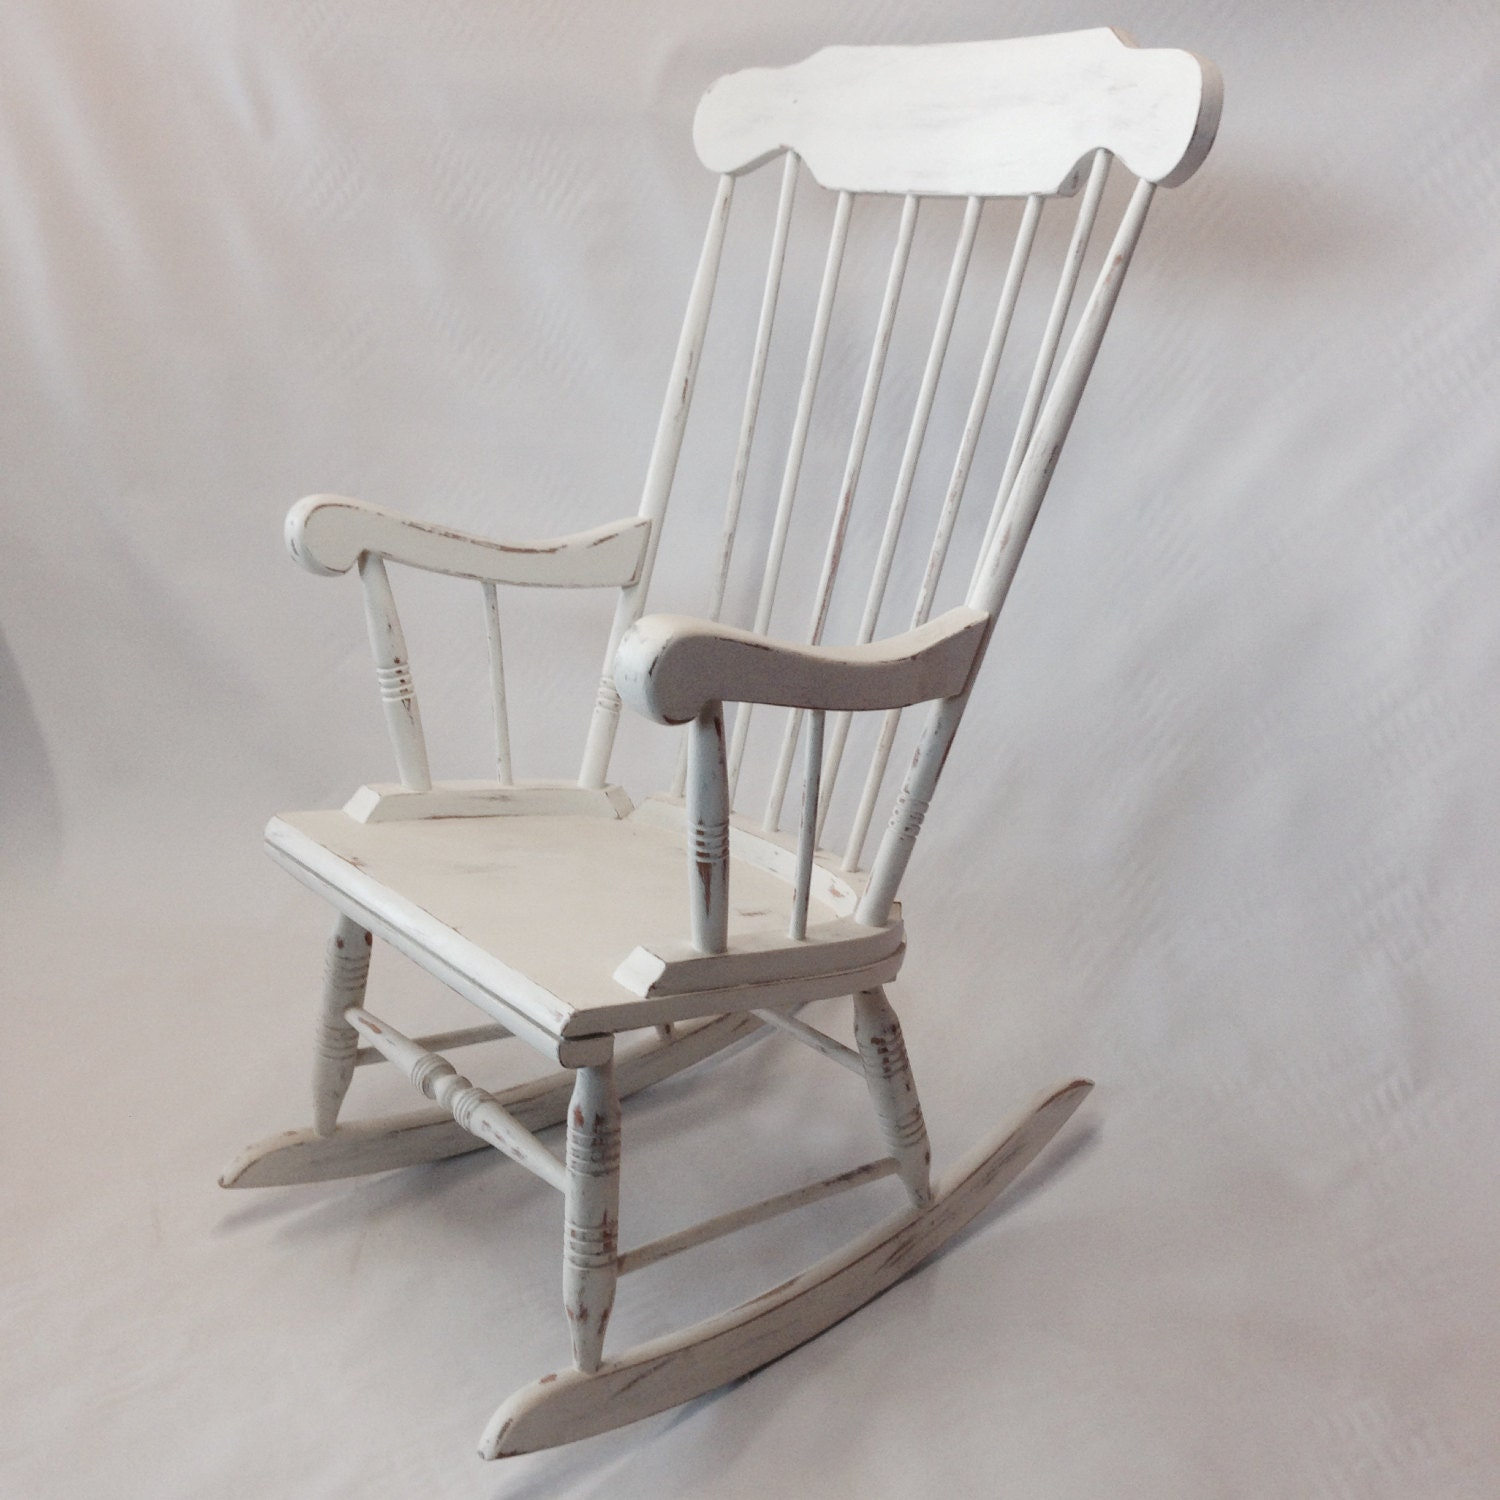 Shabby chic painted rocking chairs -  Shabby Chic Rocking Chair Painted In Two Coats Of Annie Sloan Chalk Paint Zoom